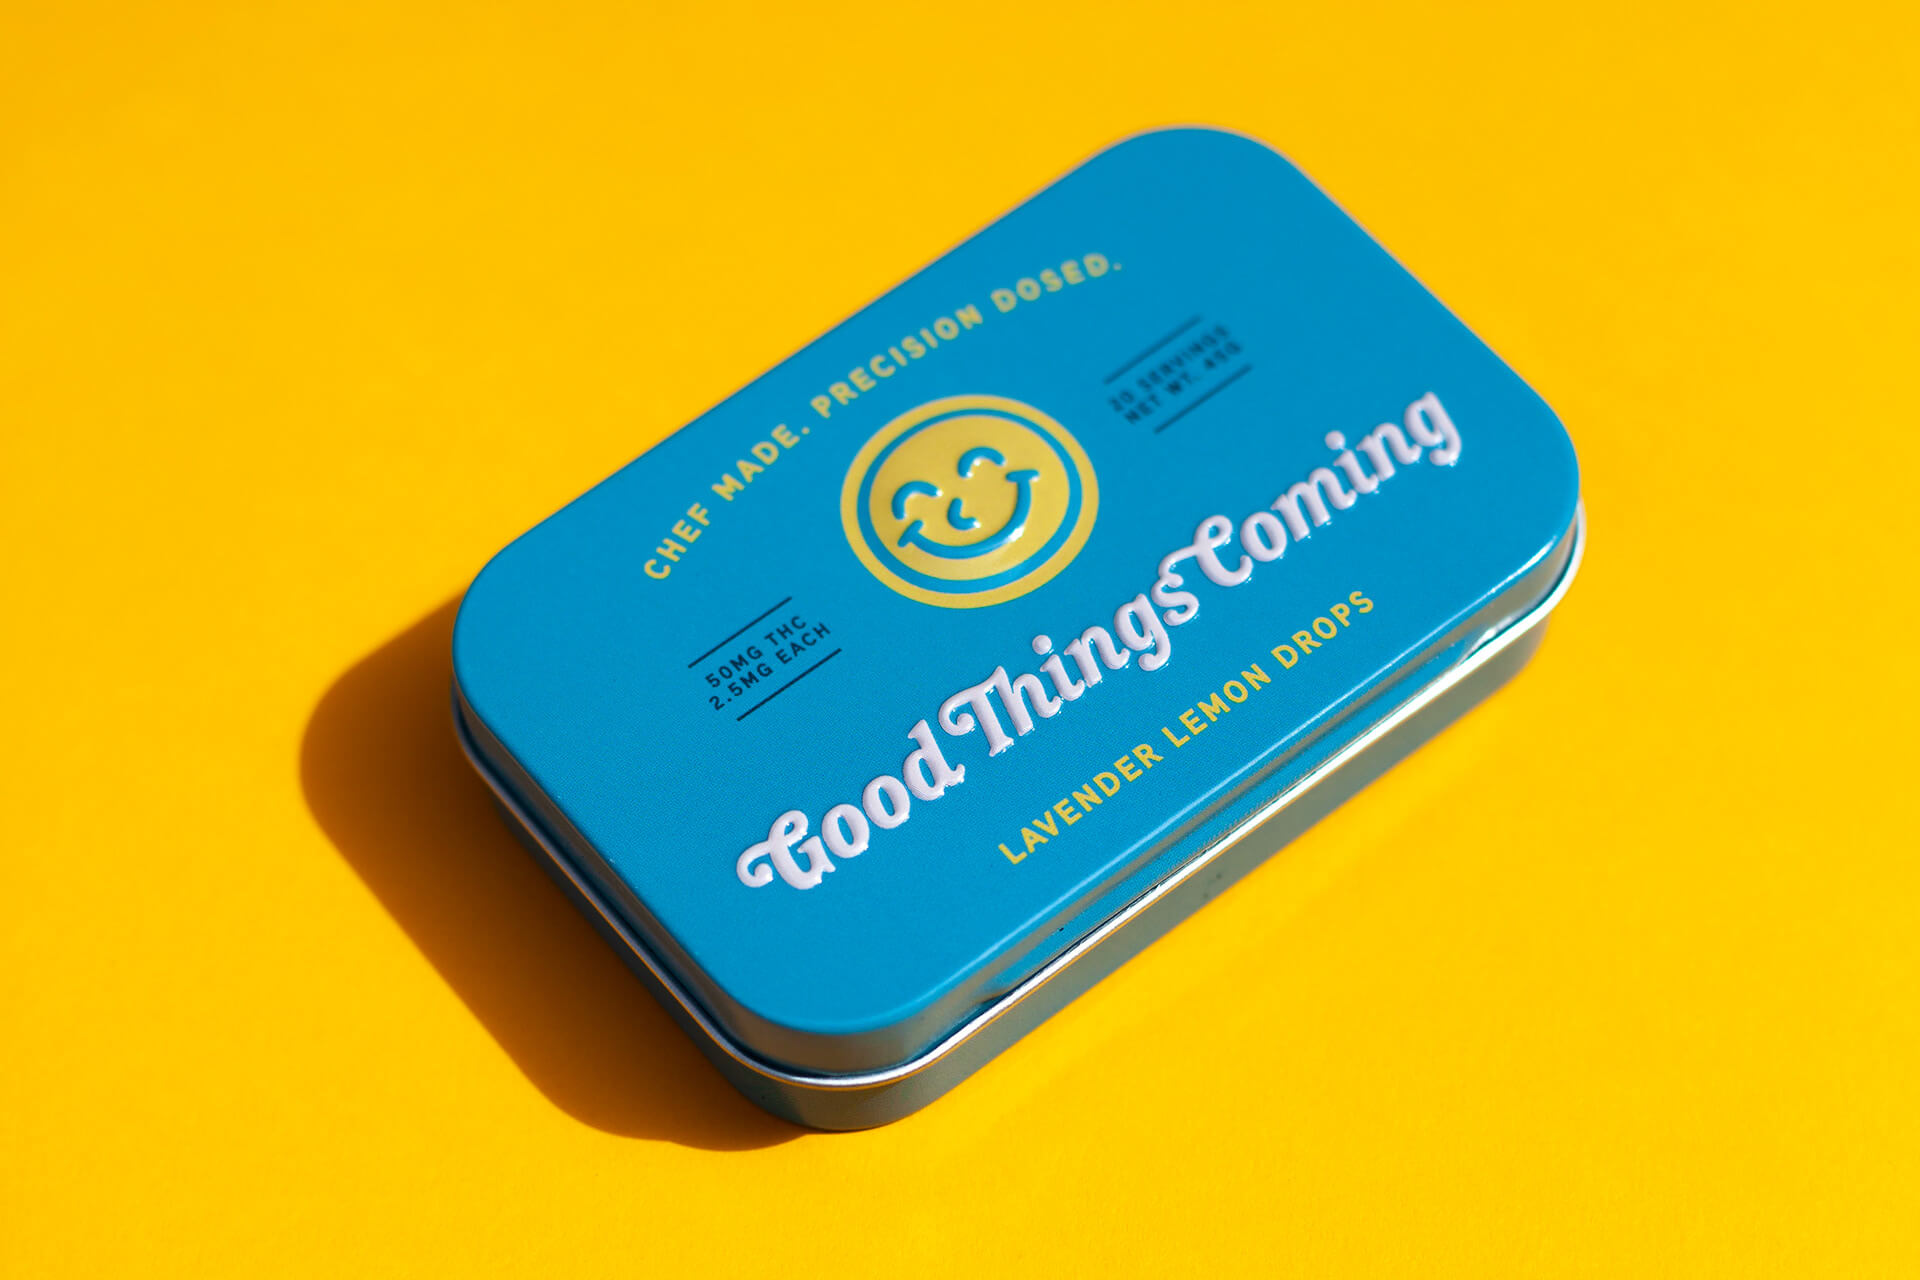 Good Things Coming Edible box